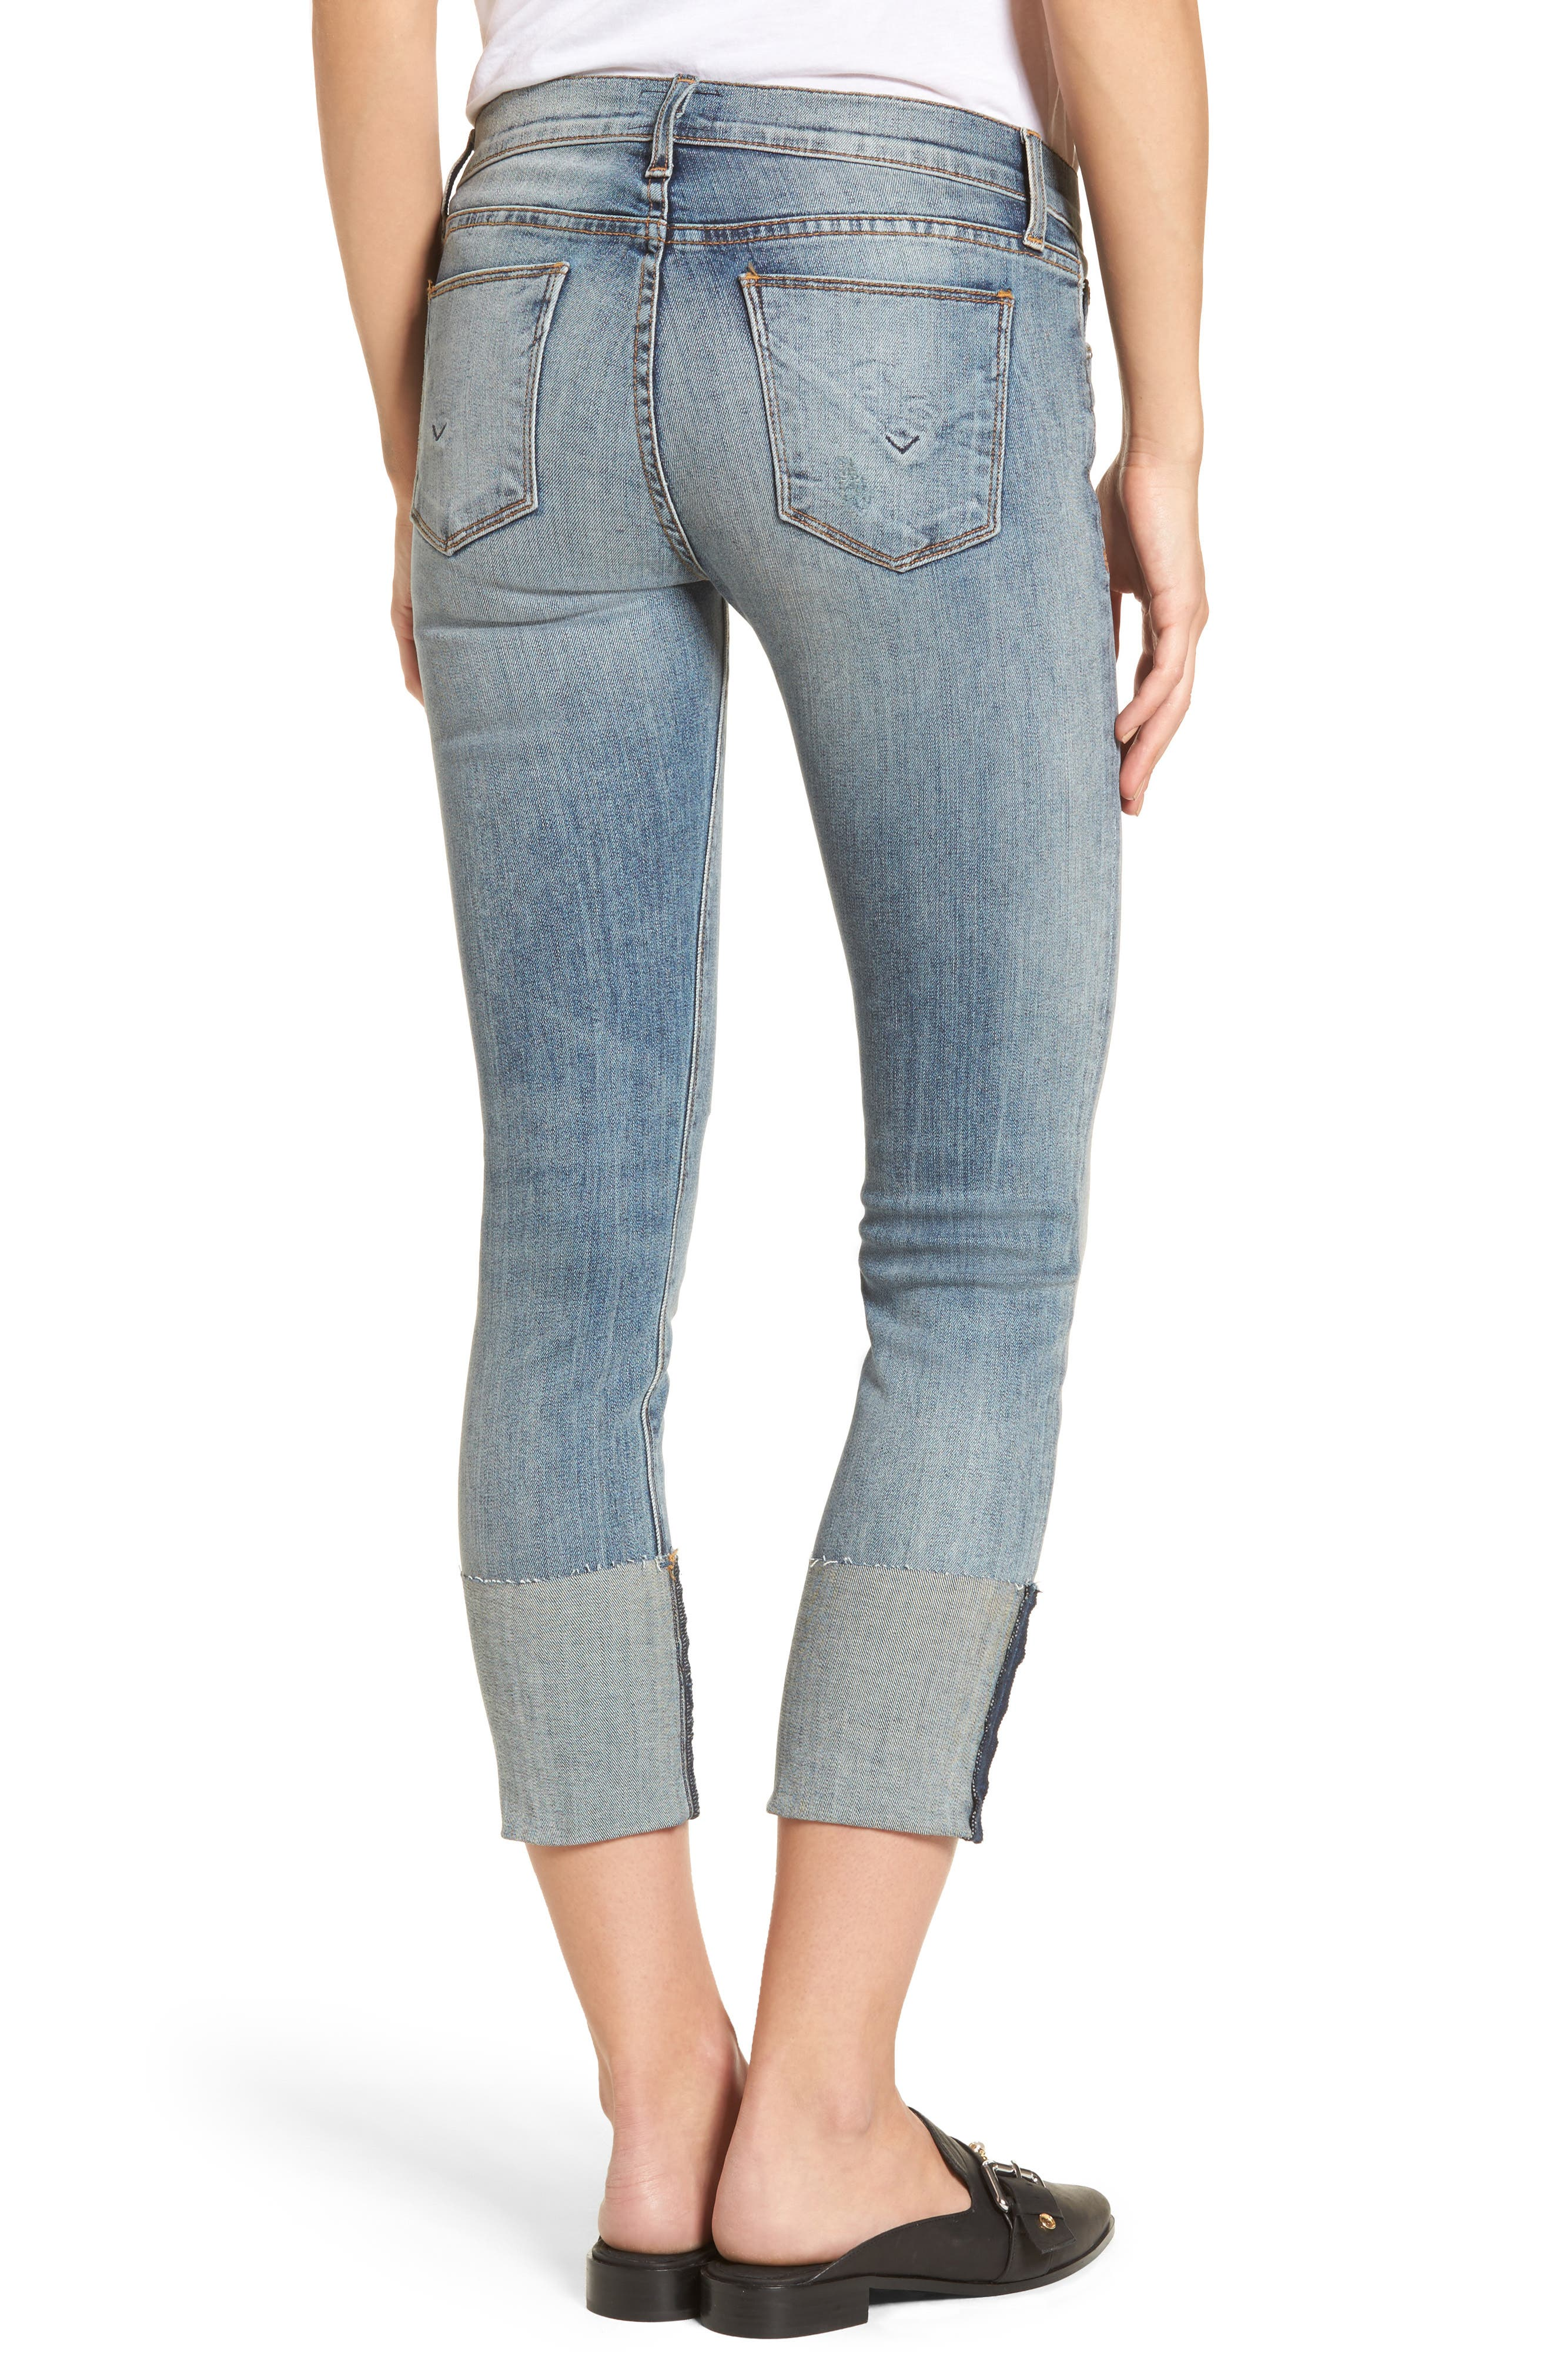 Tally Cuffed Crop Skinny Jeans,                             Alternate thumbnail 6, color,